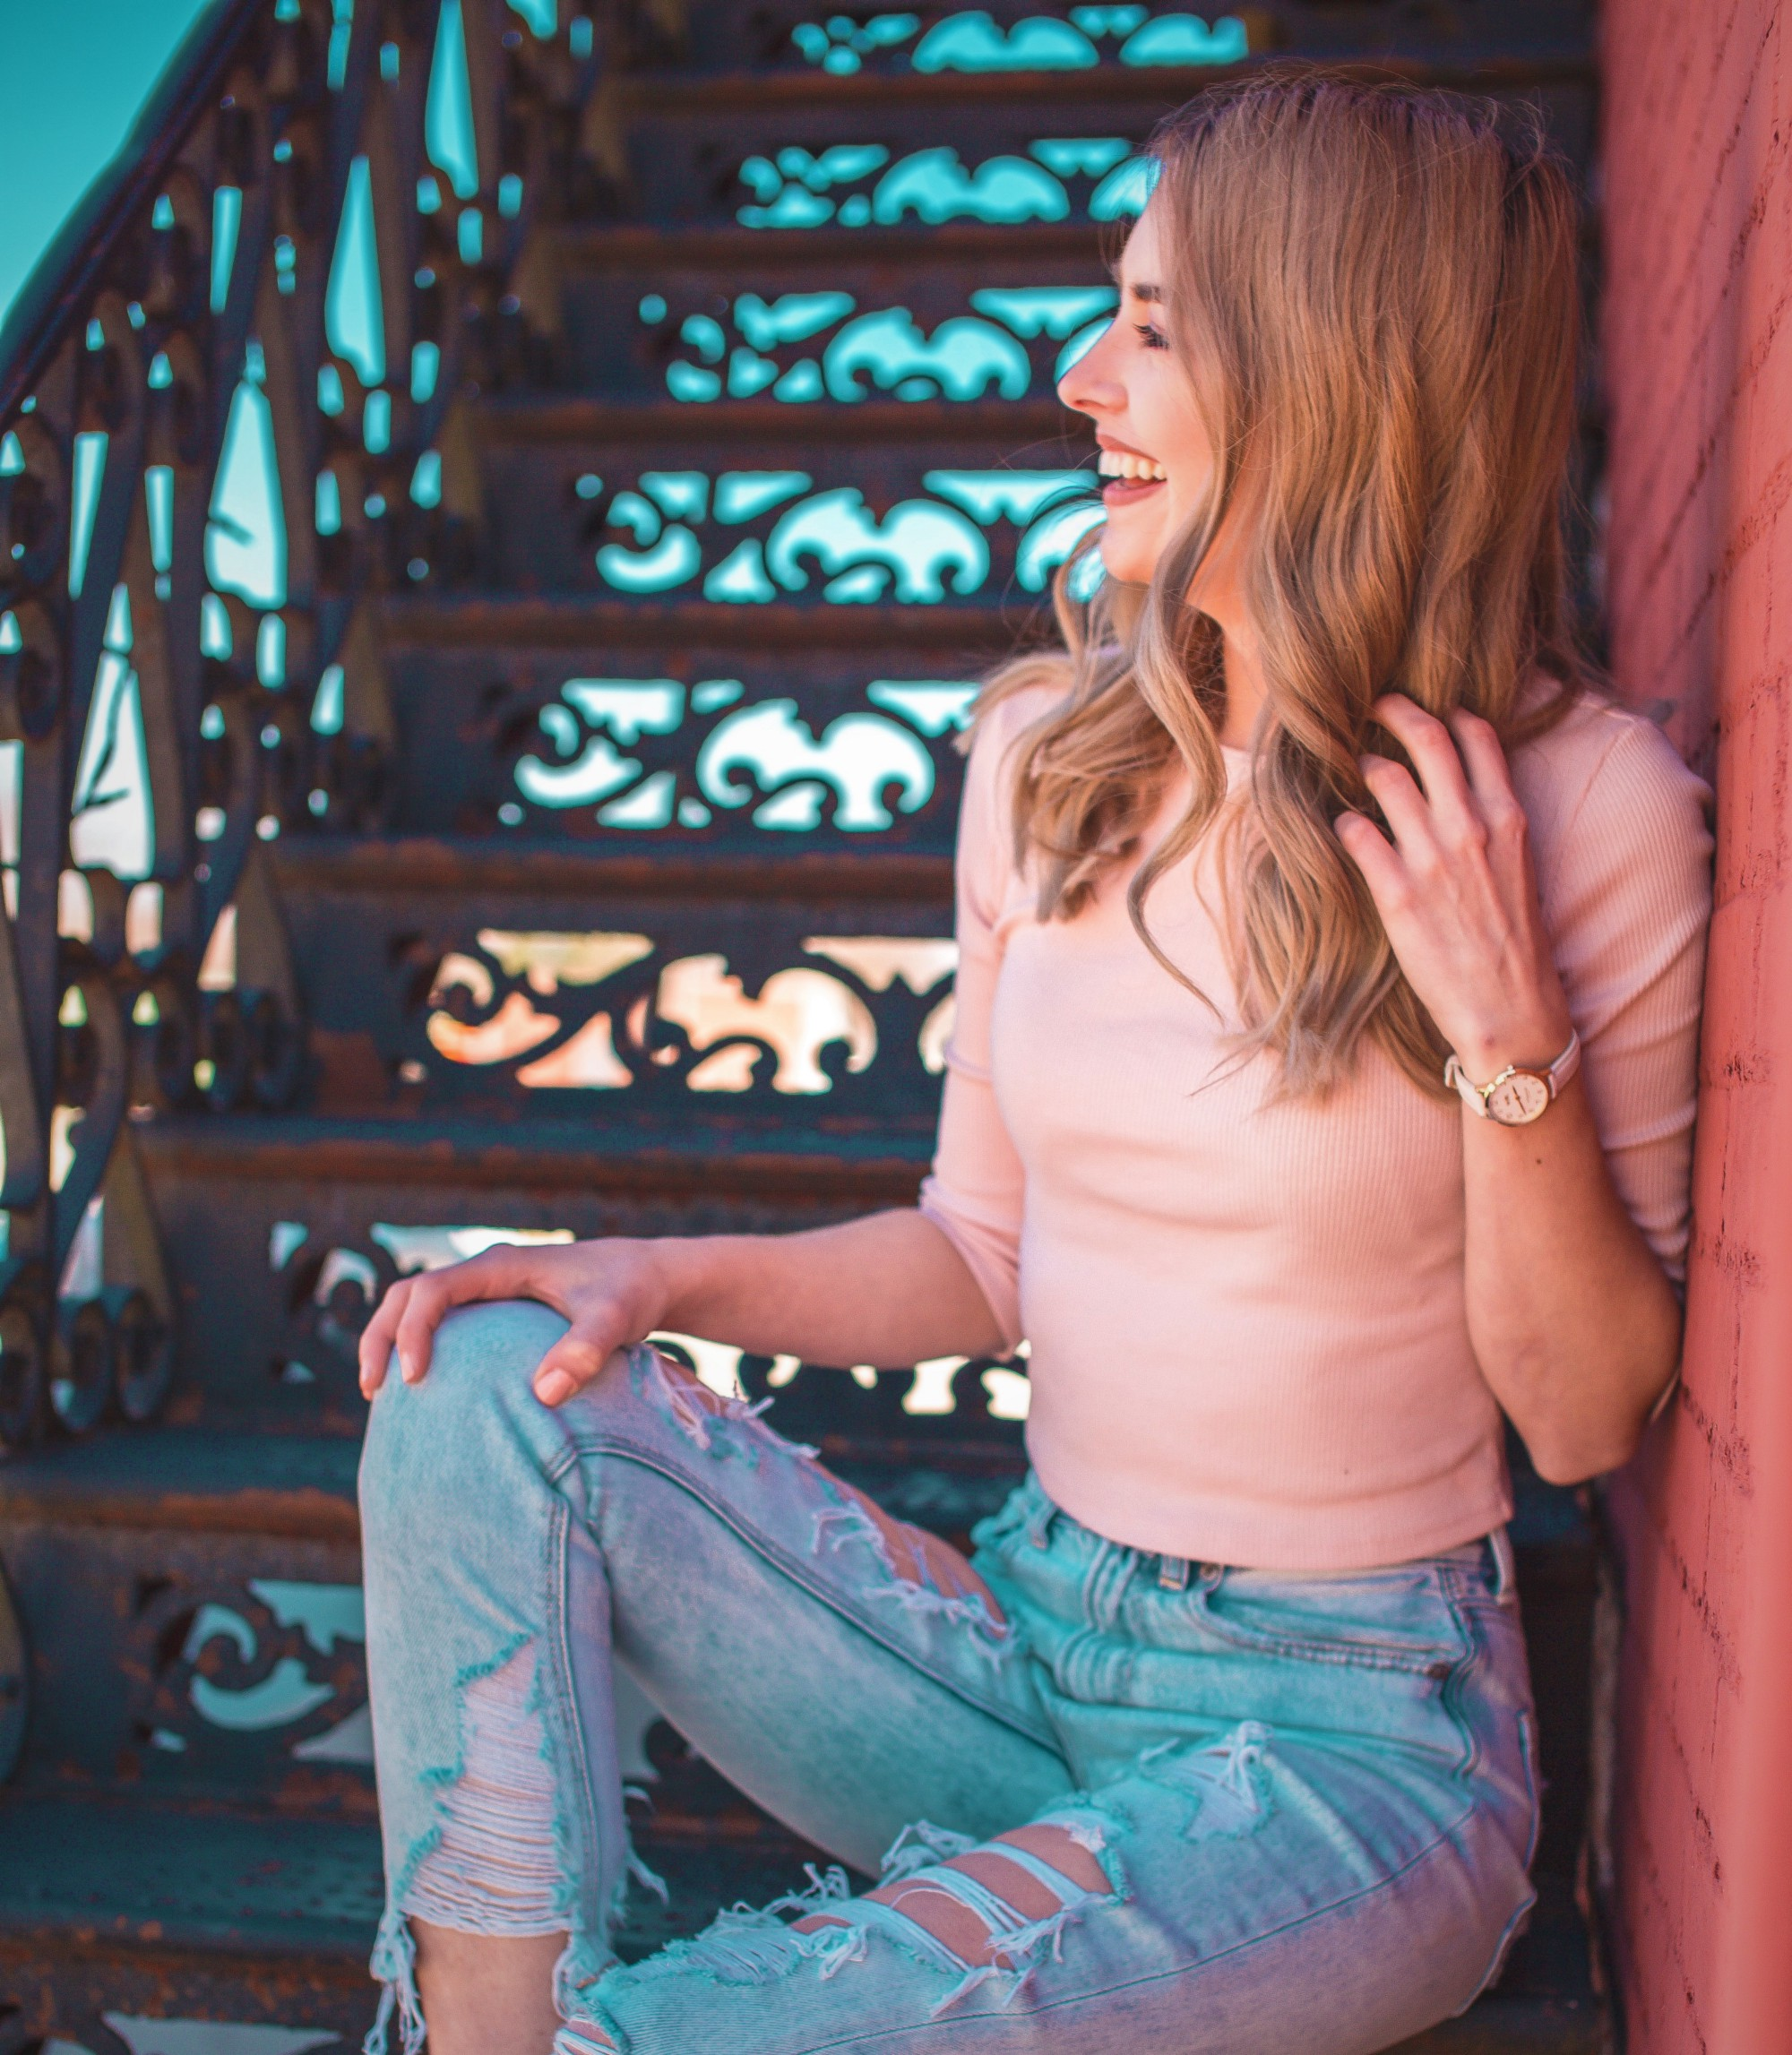 smiling girl with long brown hair wearing pink top and torn blue jeans